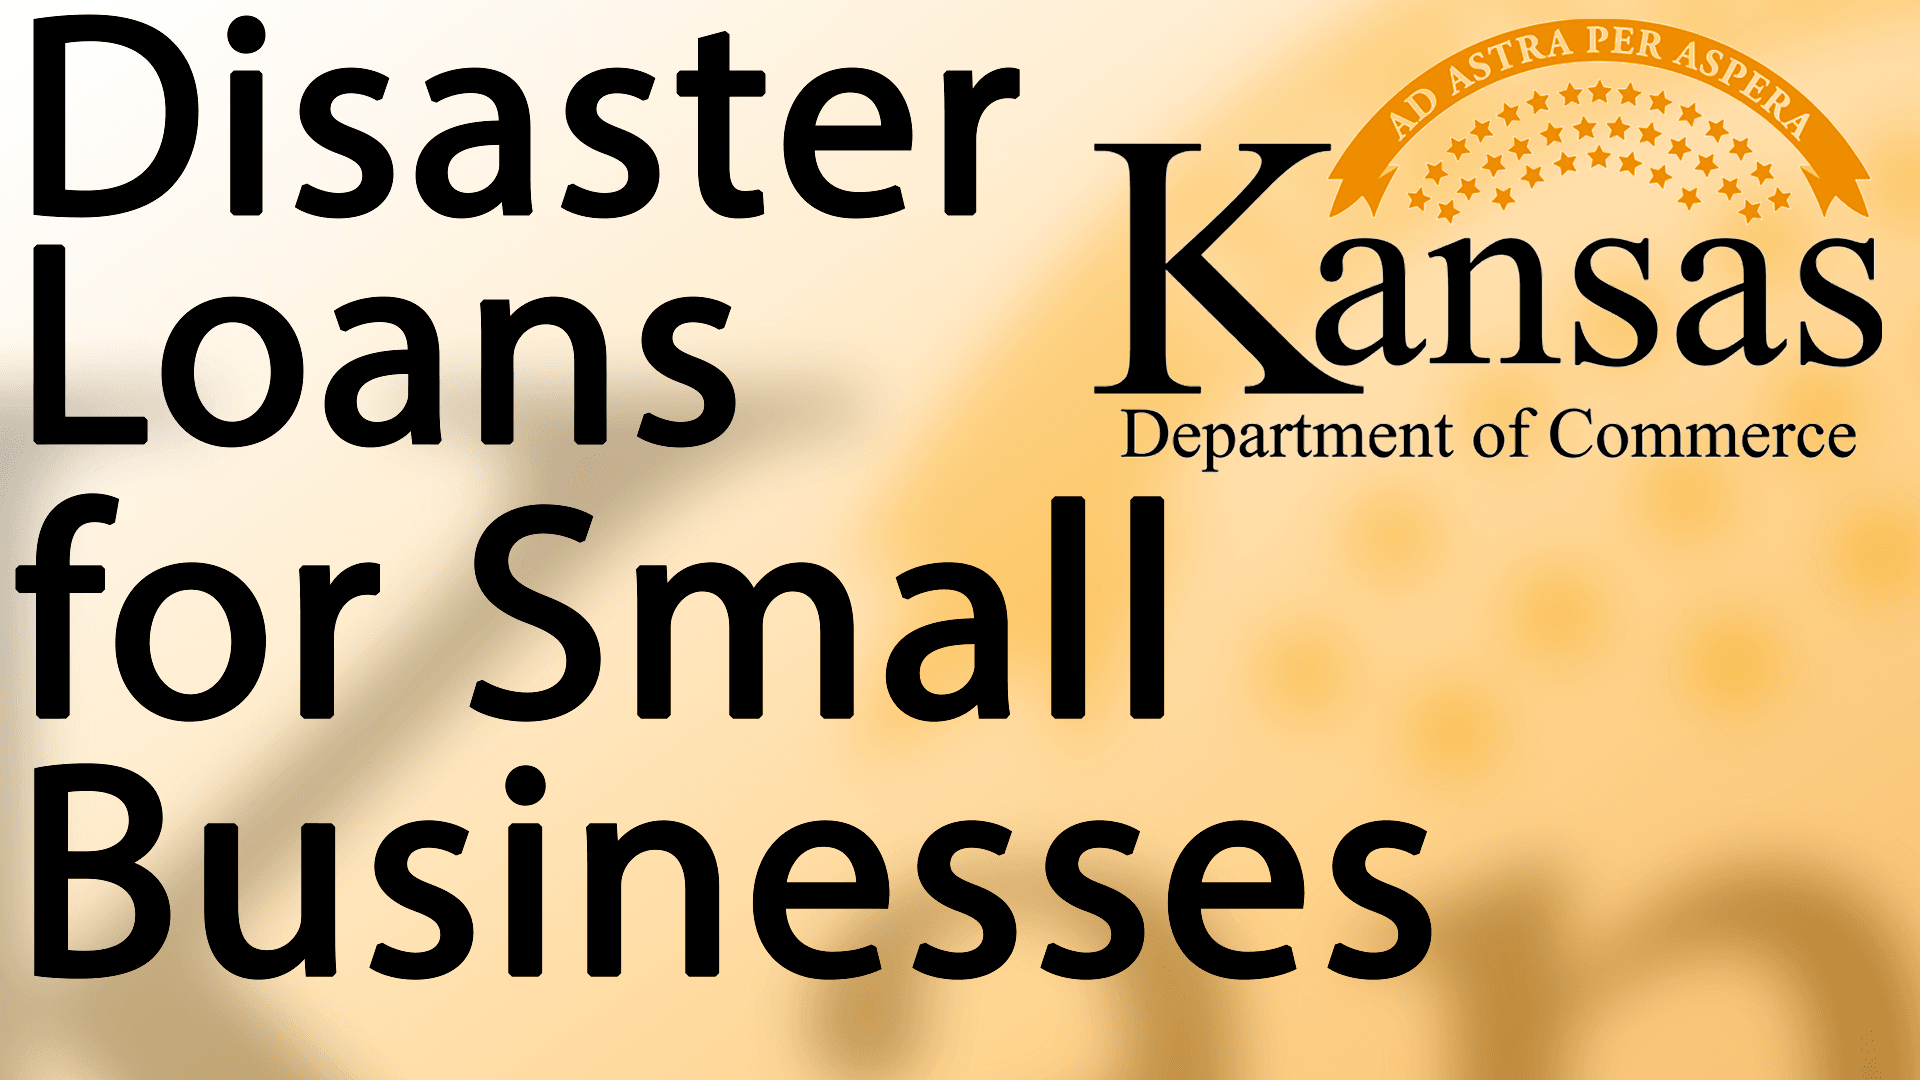 Kansas Department of Commerce disaster small business loan header